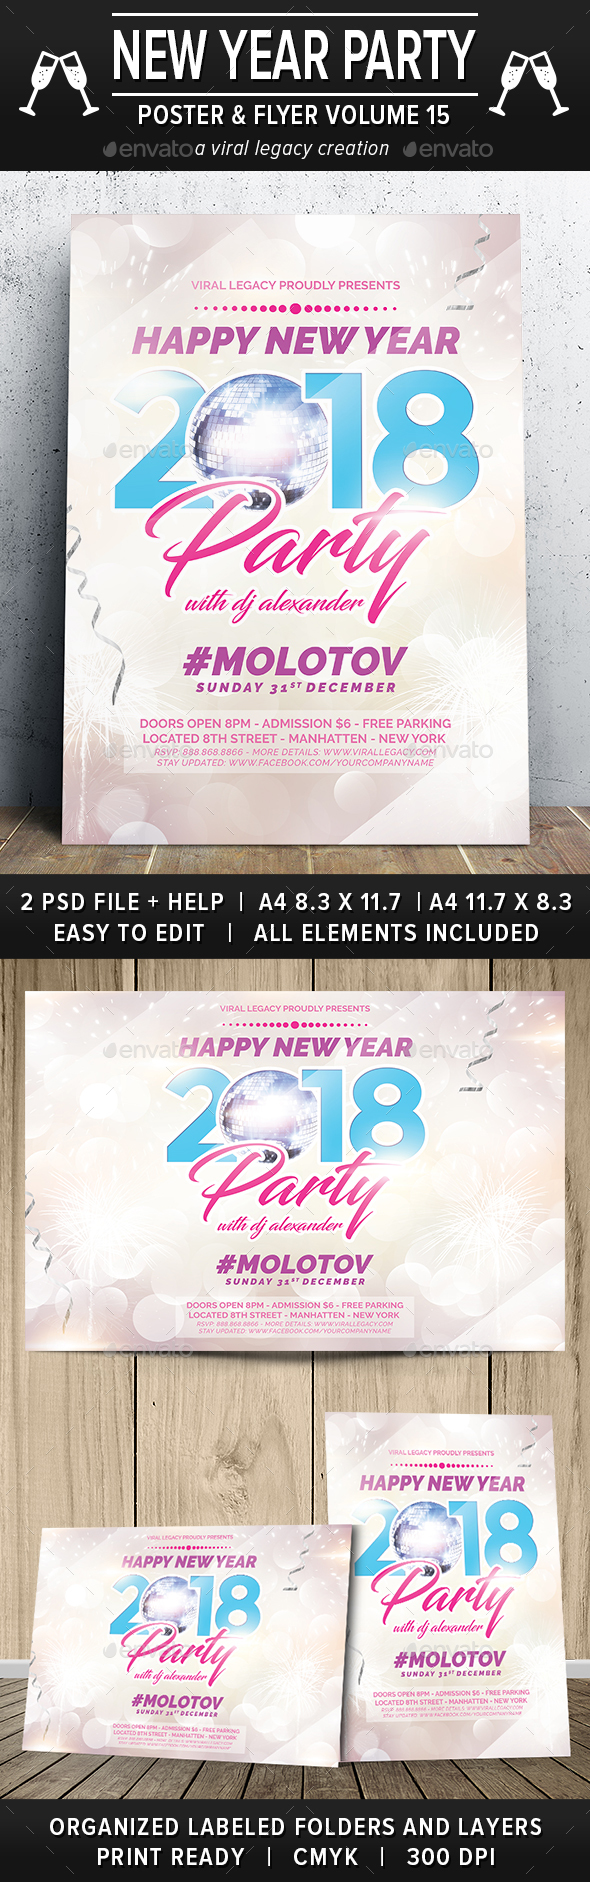 New Year Party Poster / Flyer V15 - Events Flyers